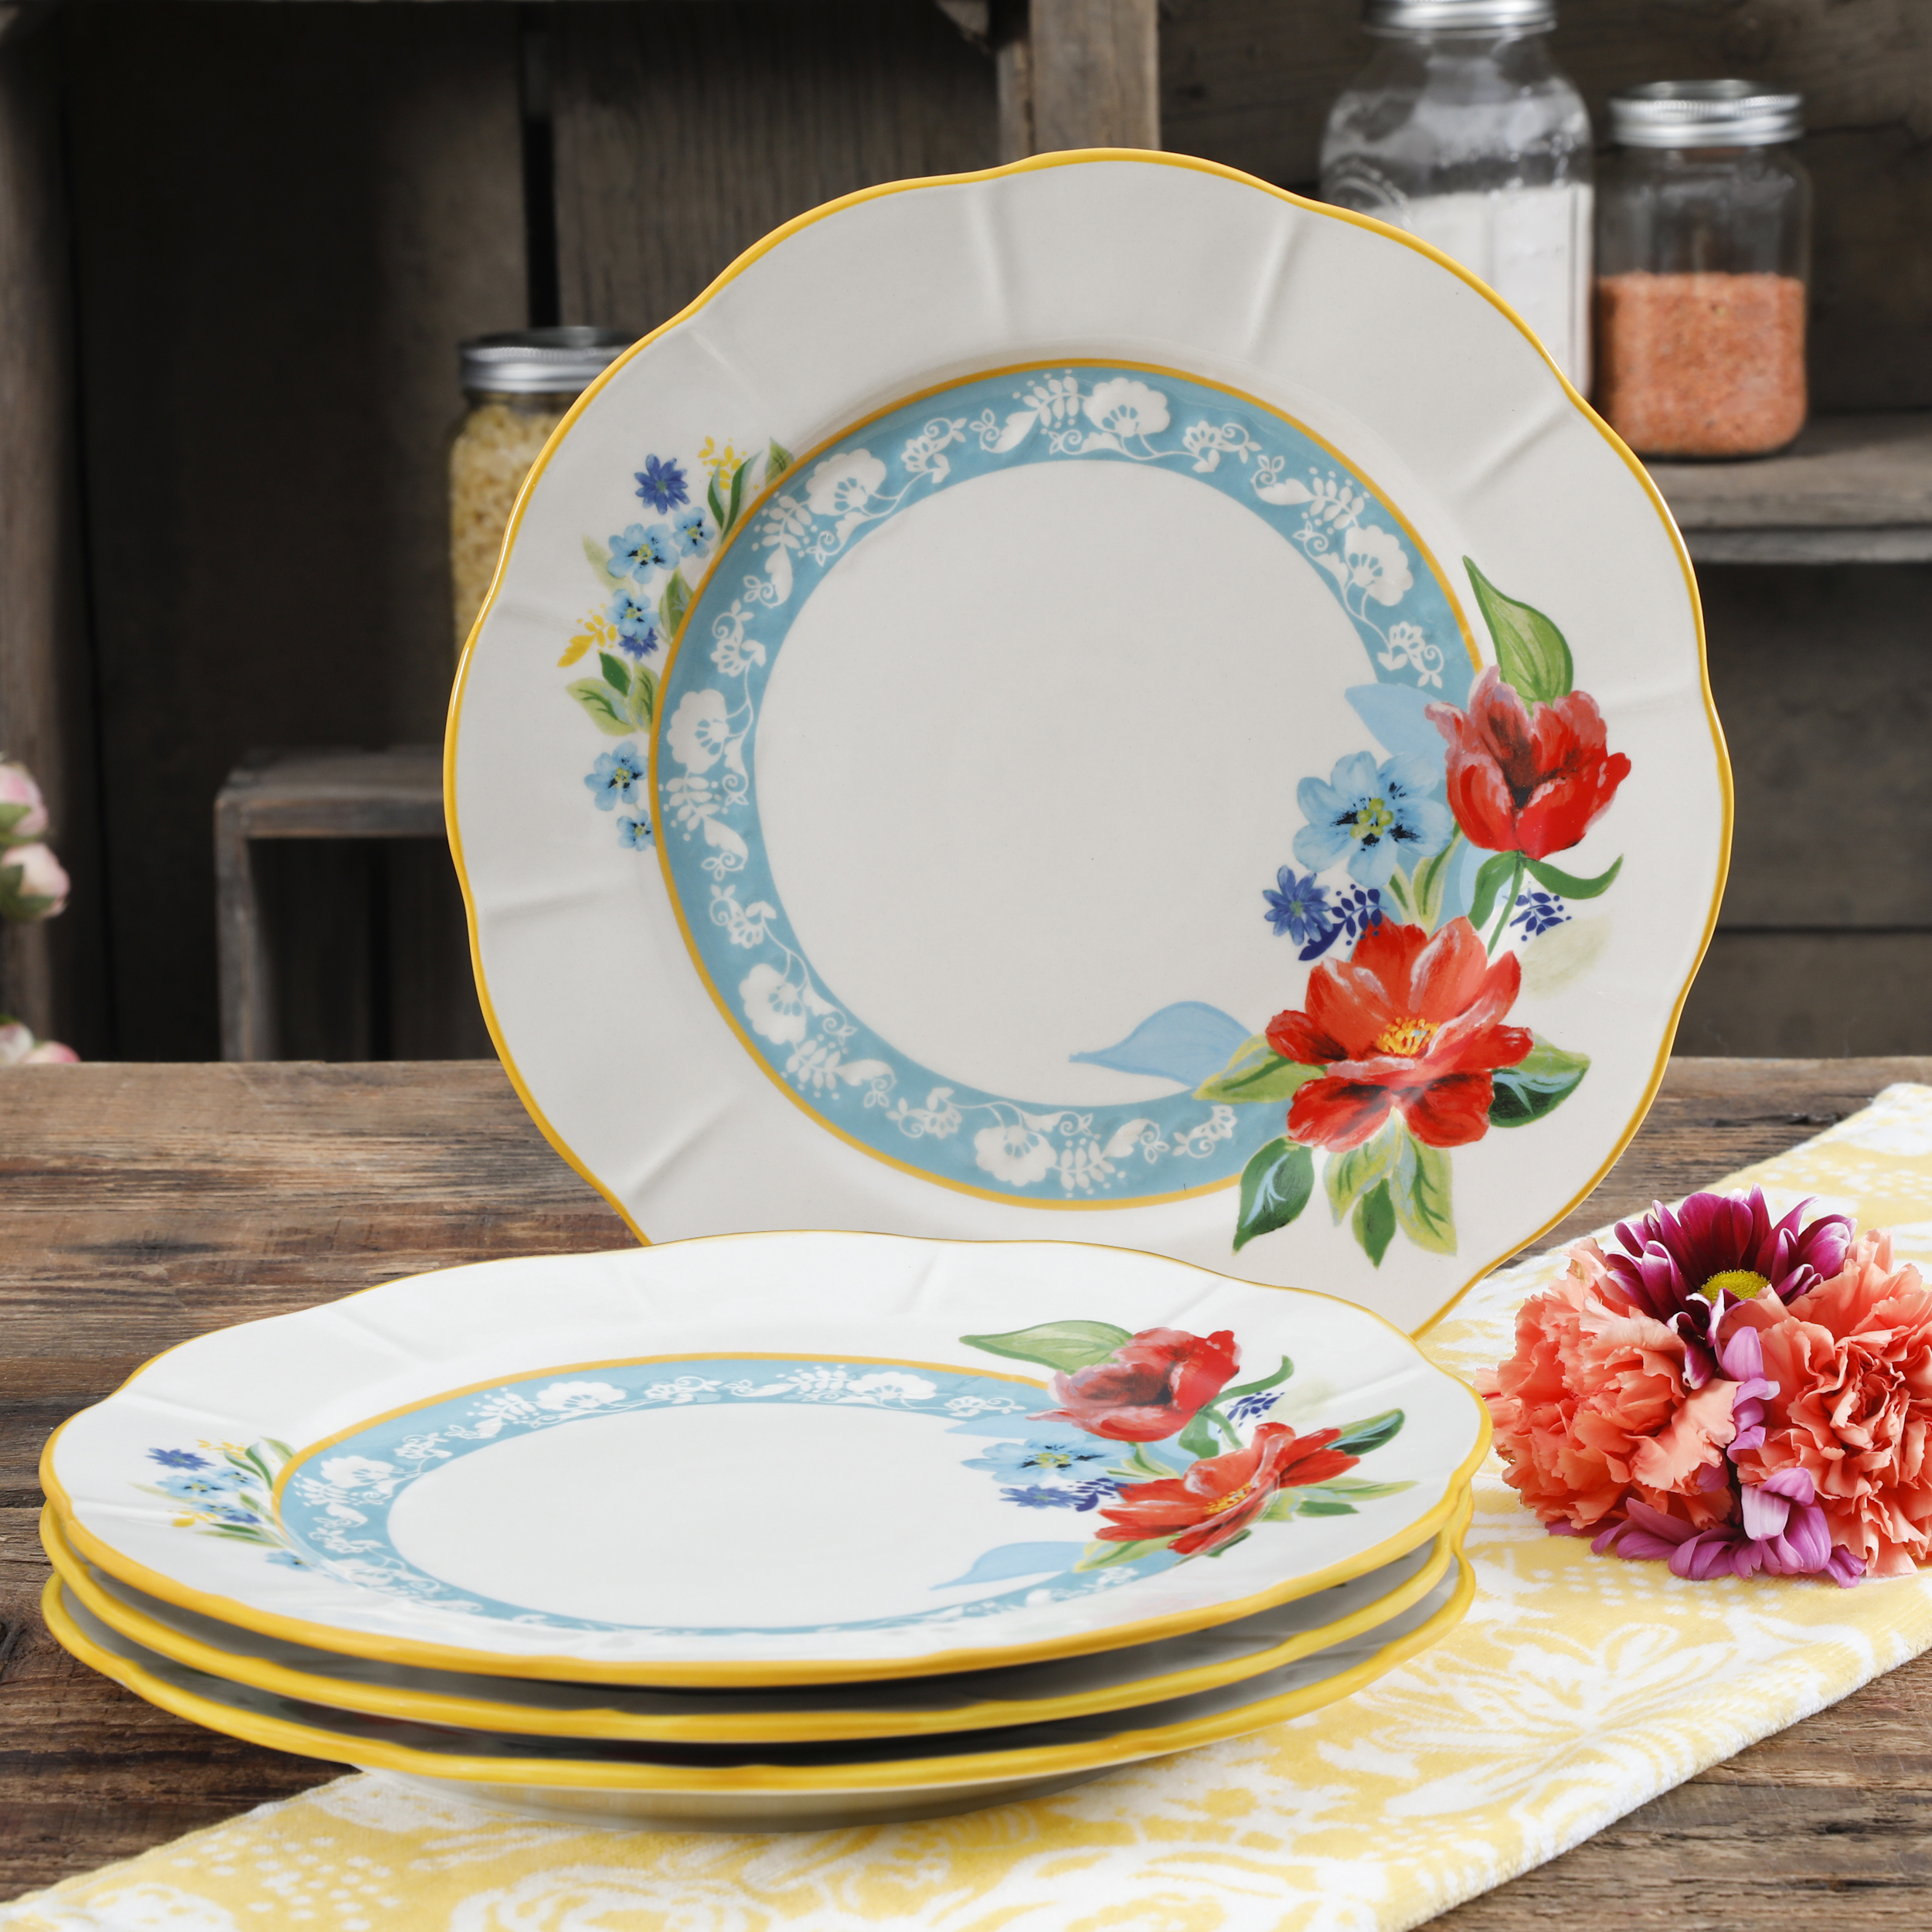 The Pioneer Woman Spring Bouquet 11-Inch Dinner Plates, Set of 4